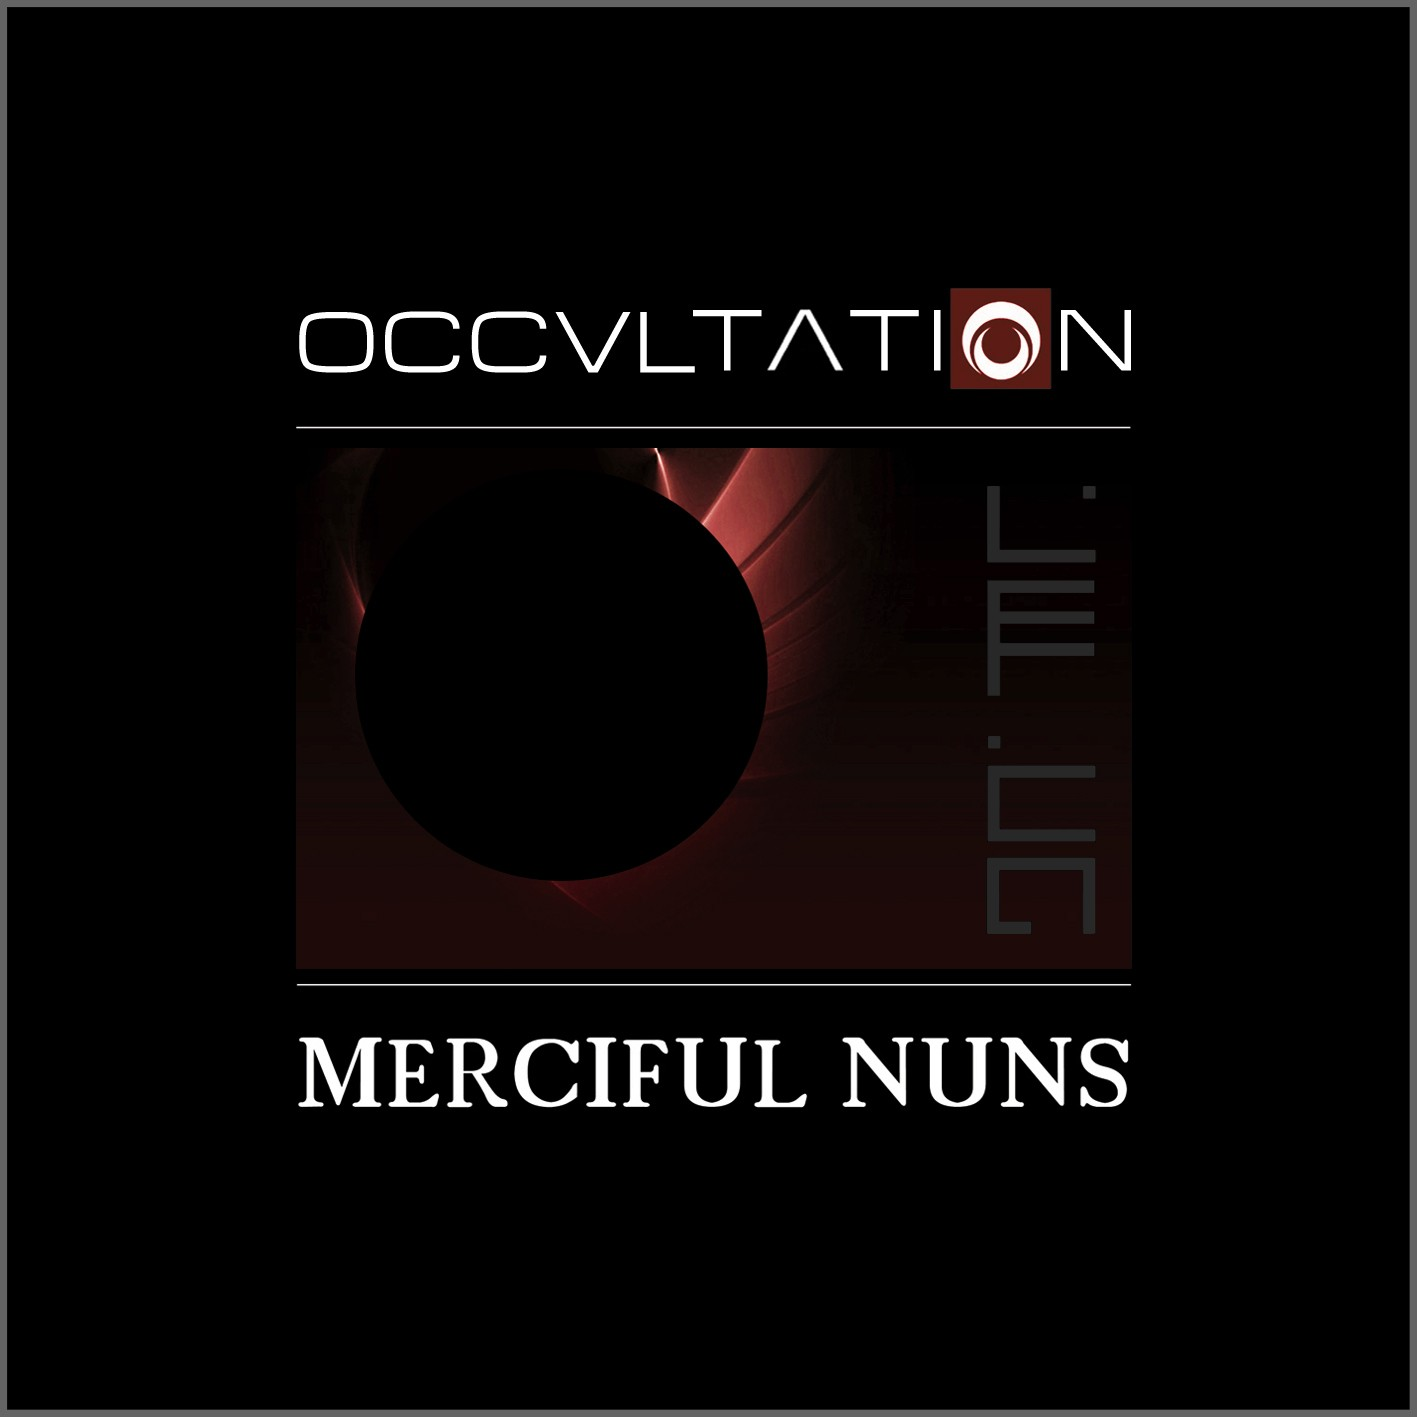 Merciful Nuns - Occvltation (Best Of) - CD